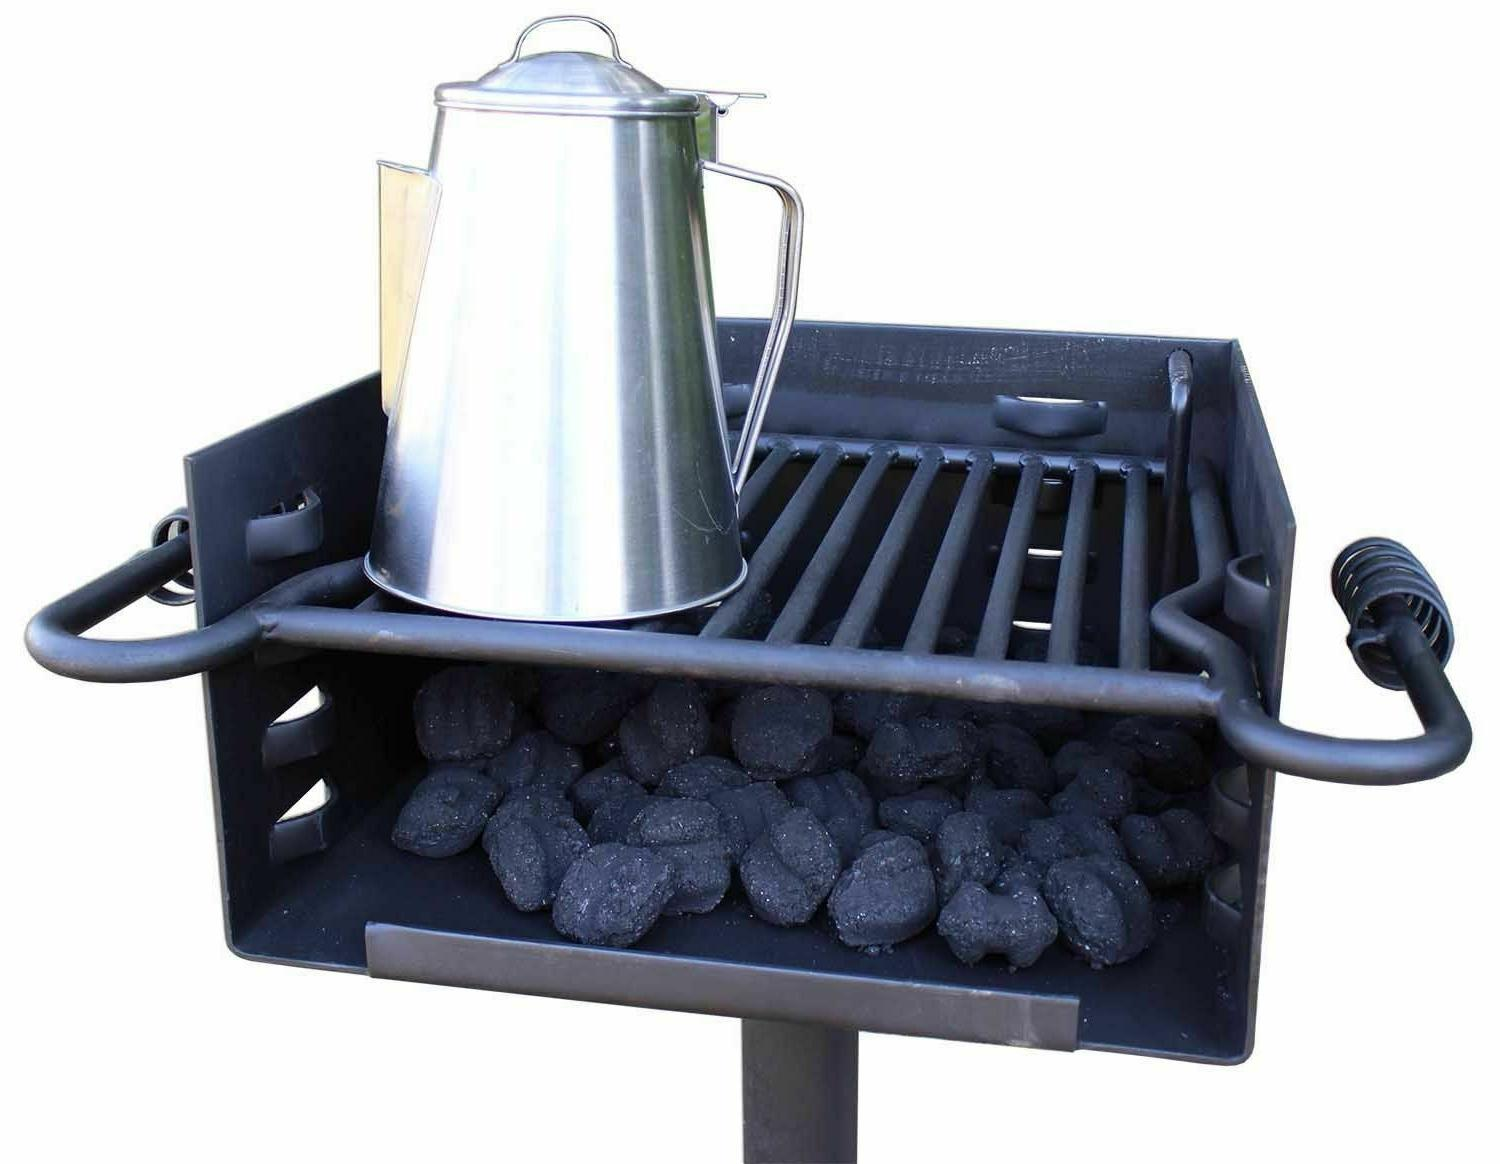 Style Grill Charcoal Outdoor Heavy Duty Camp#